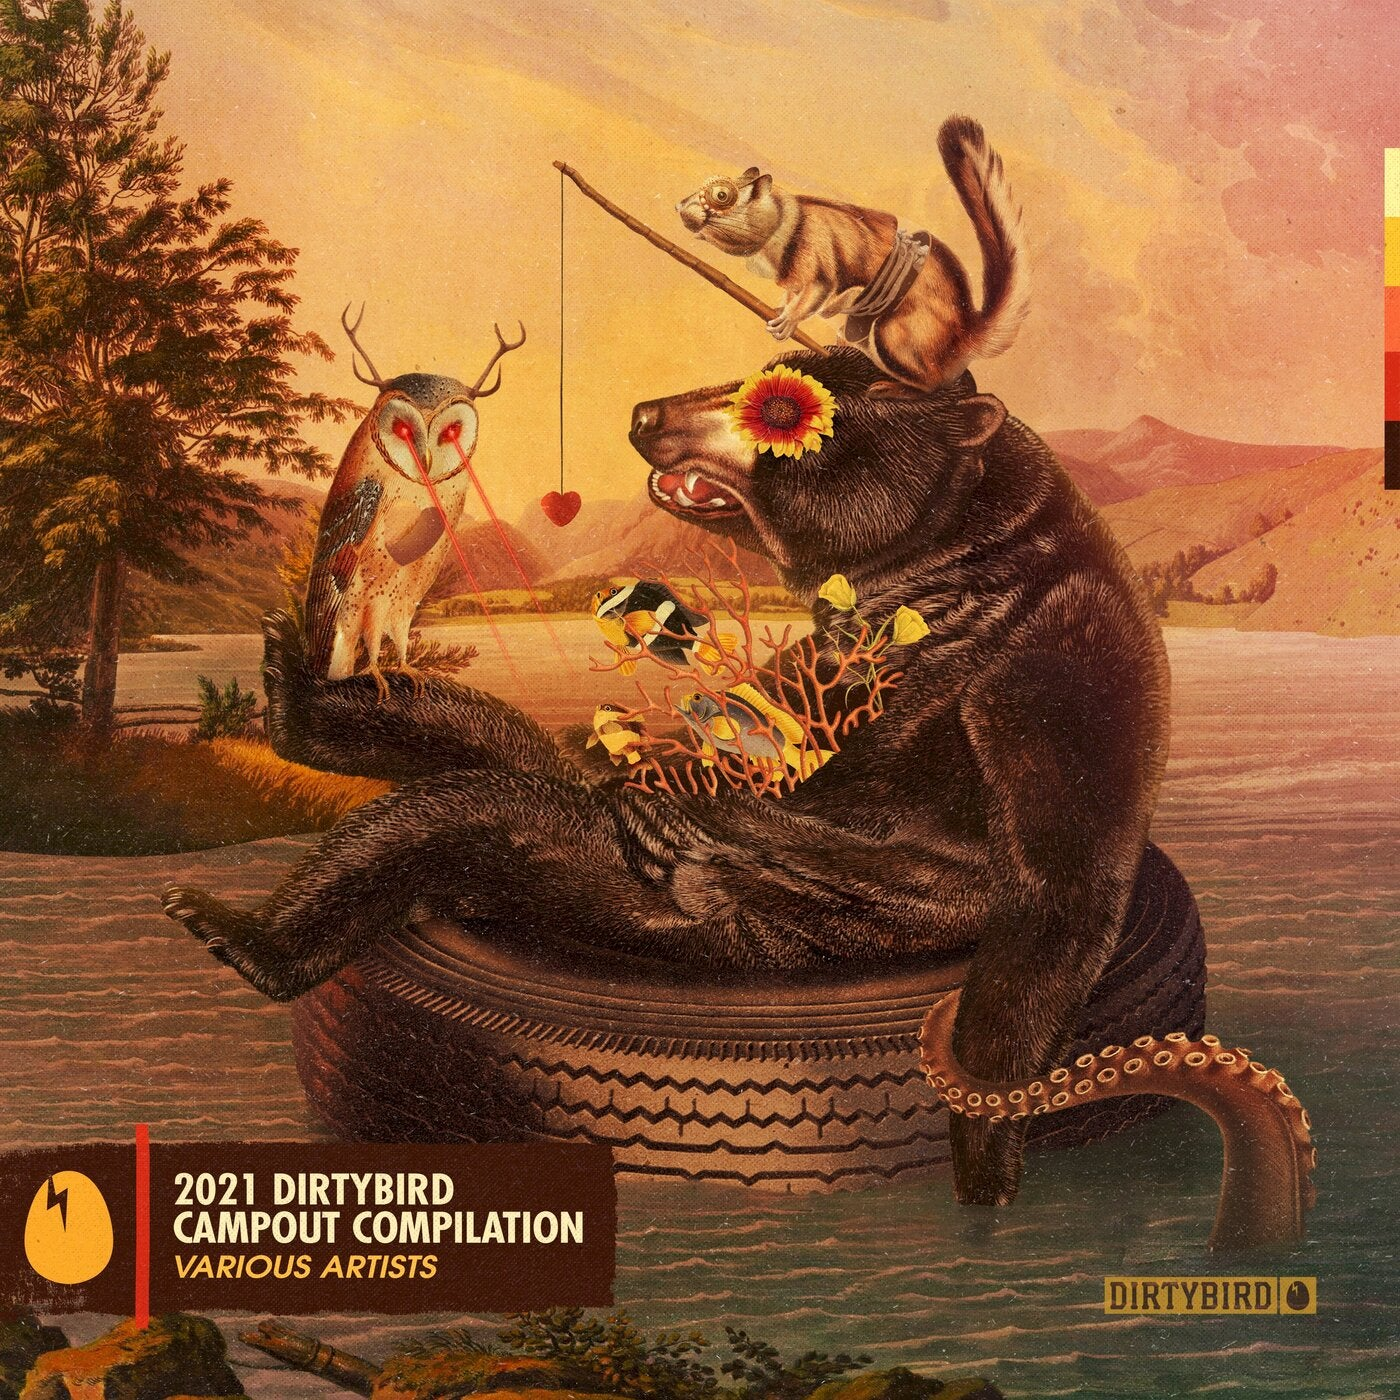 Dirtybird Campout Compilation 2021